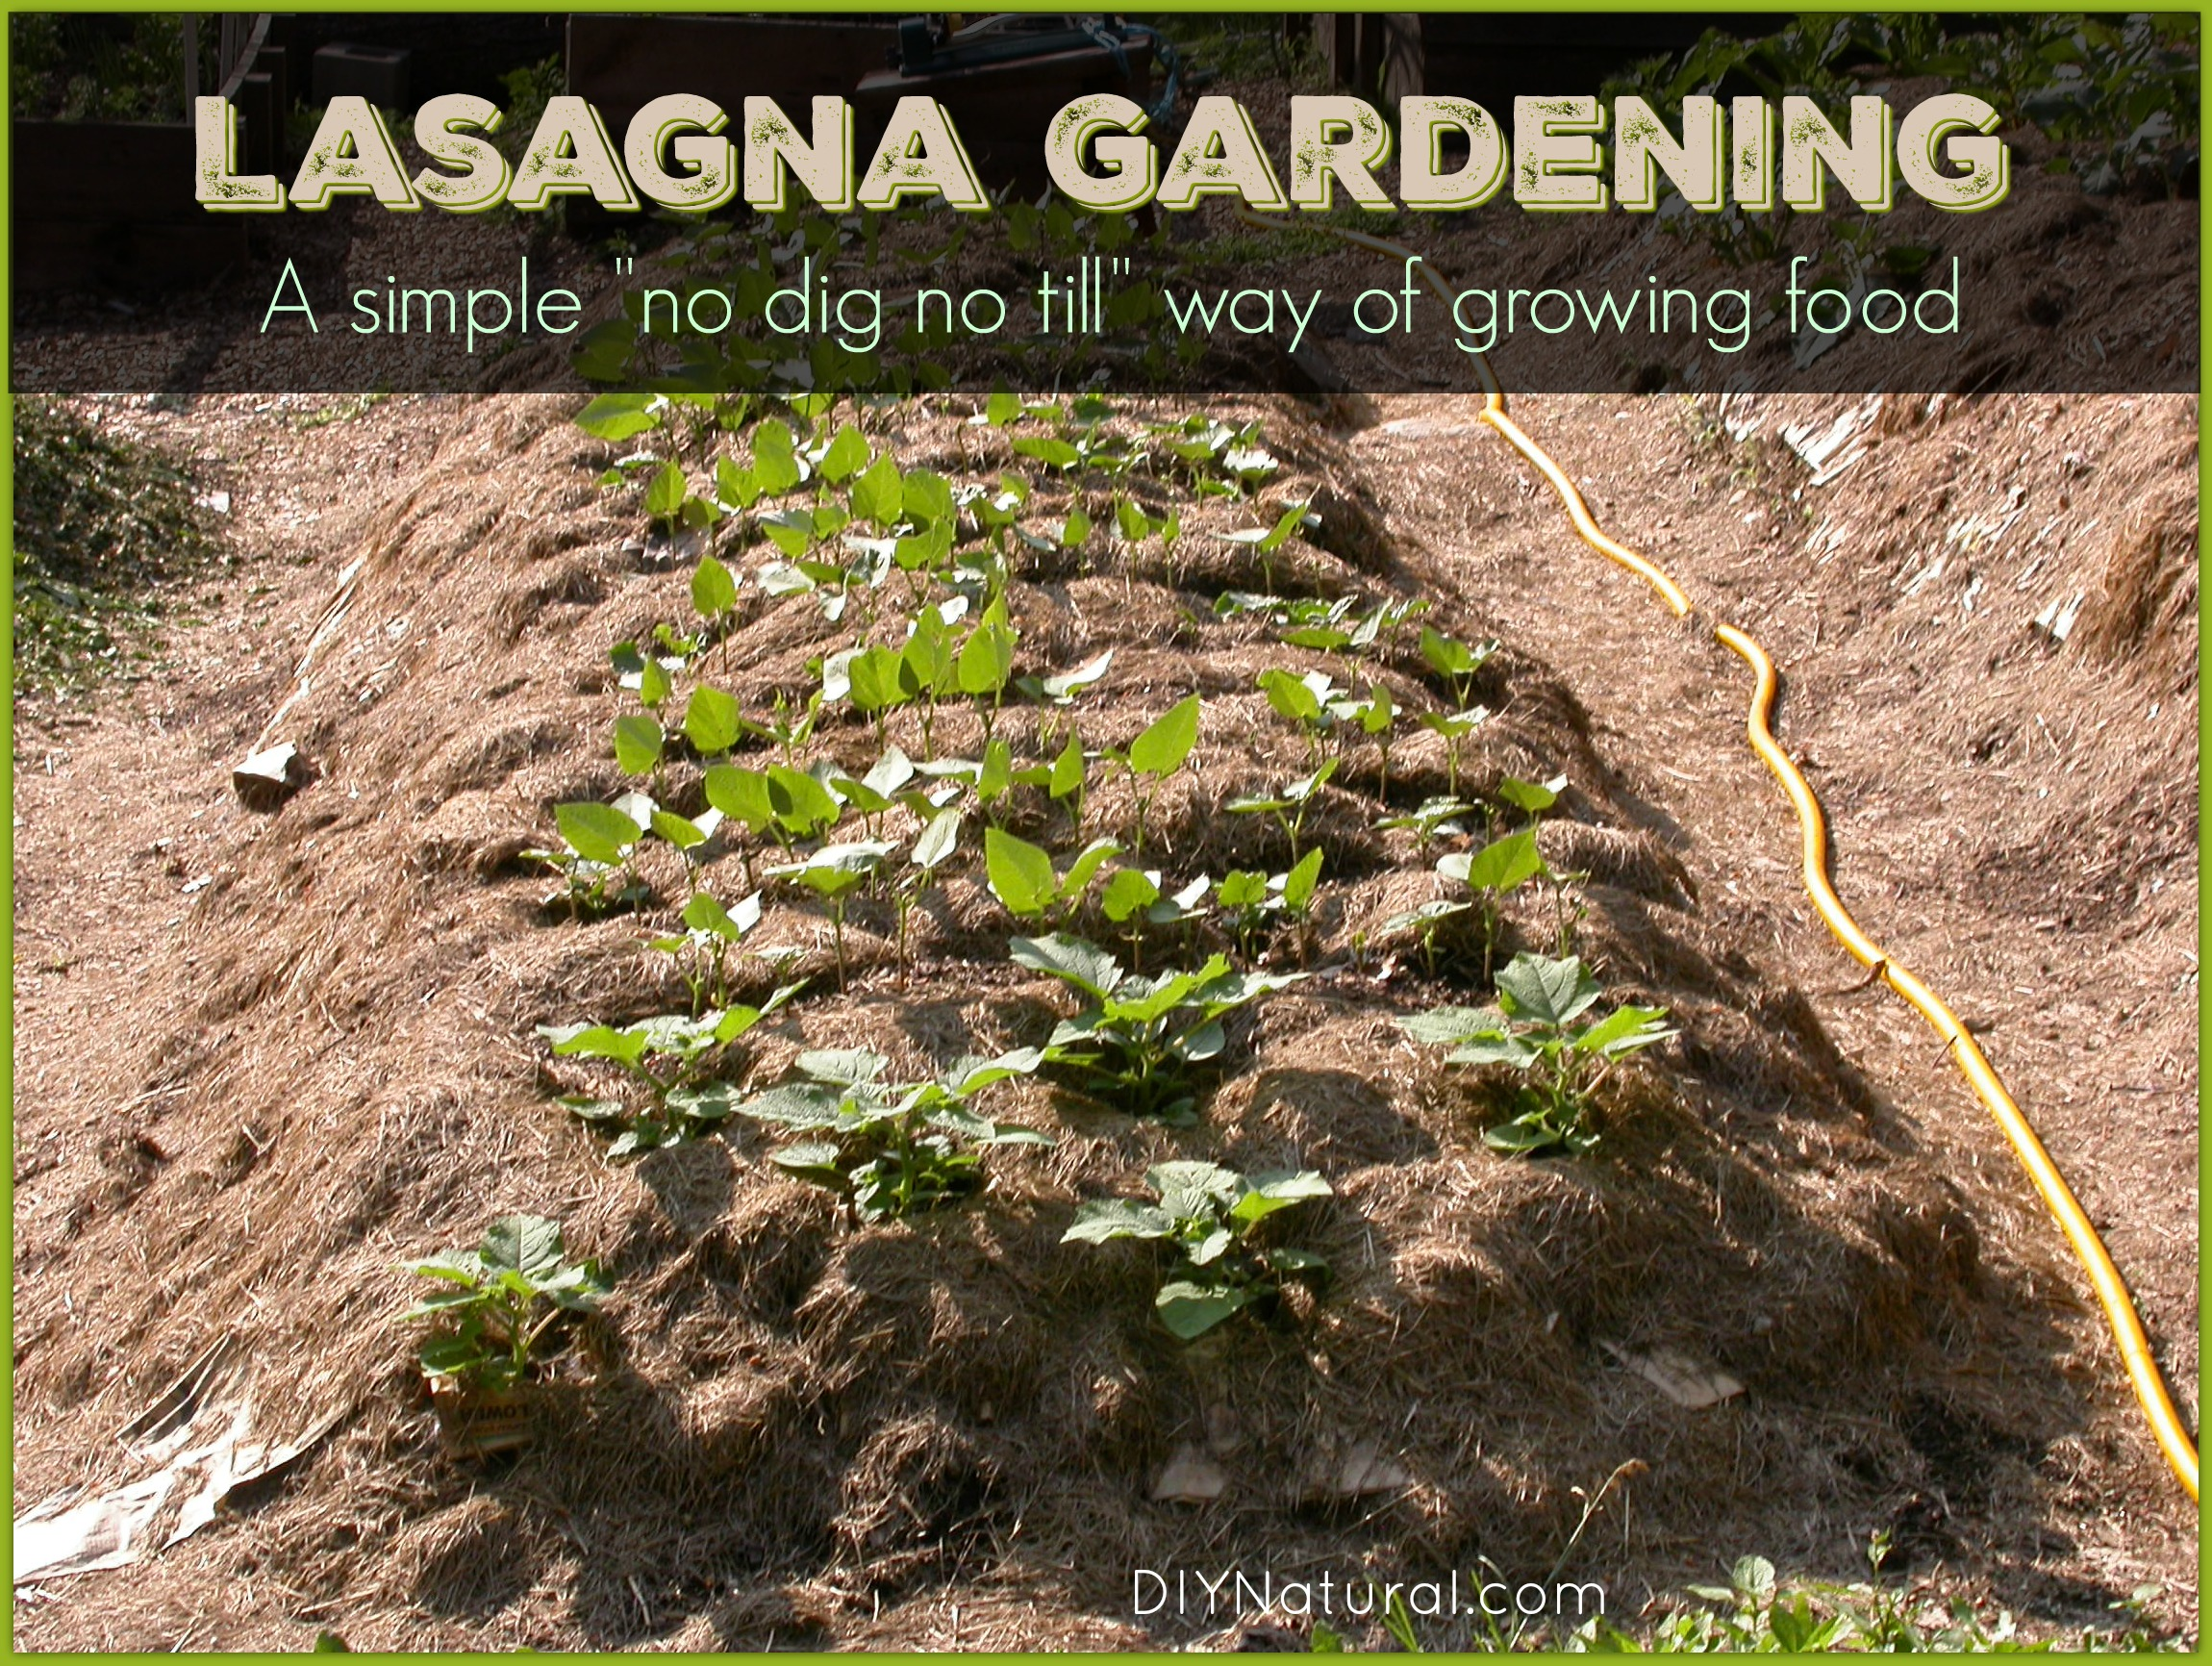 Straw Bale Gardening Solutions From Nature - Home & Furniture Design ...